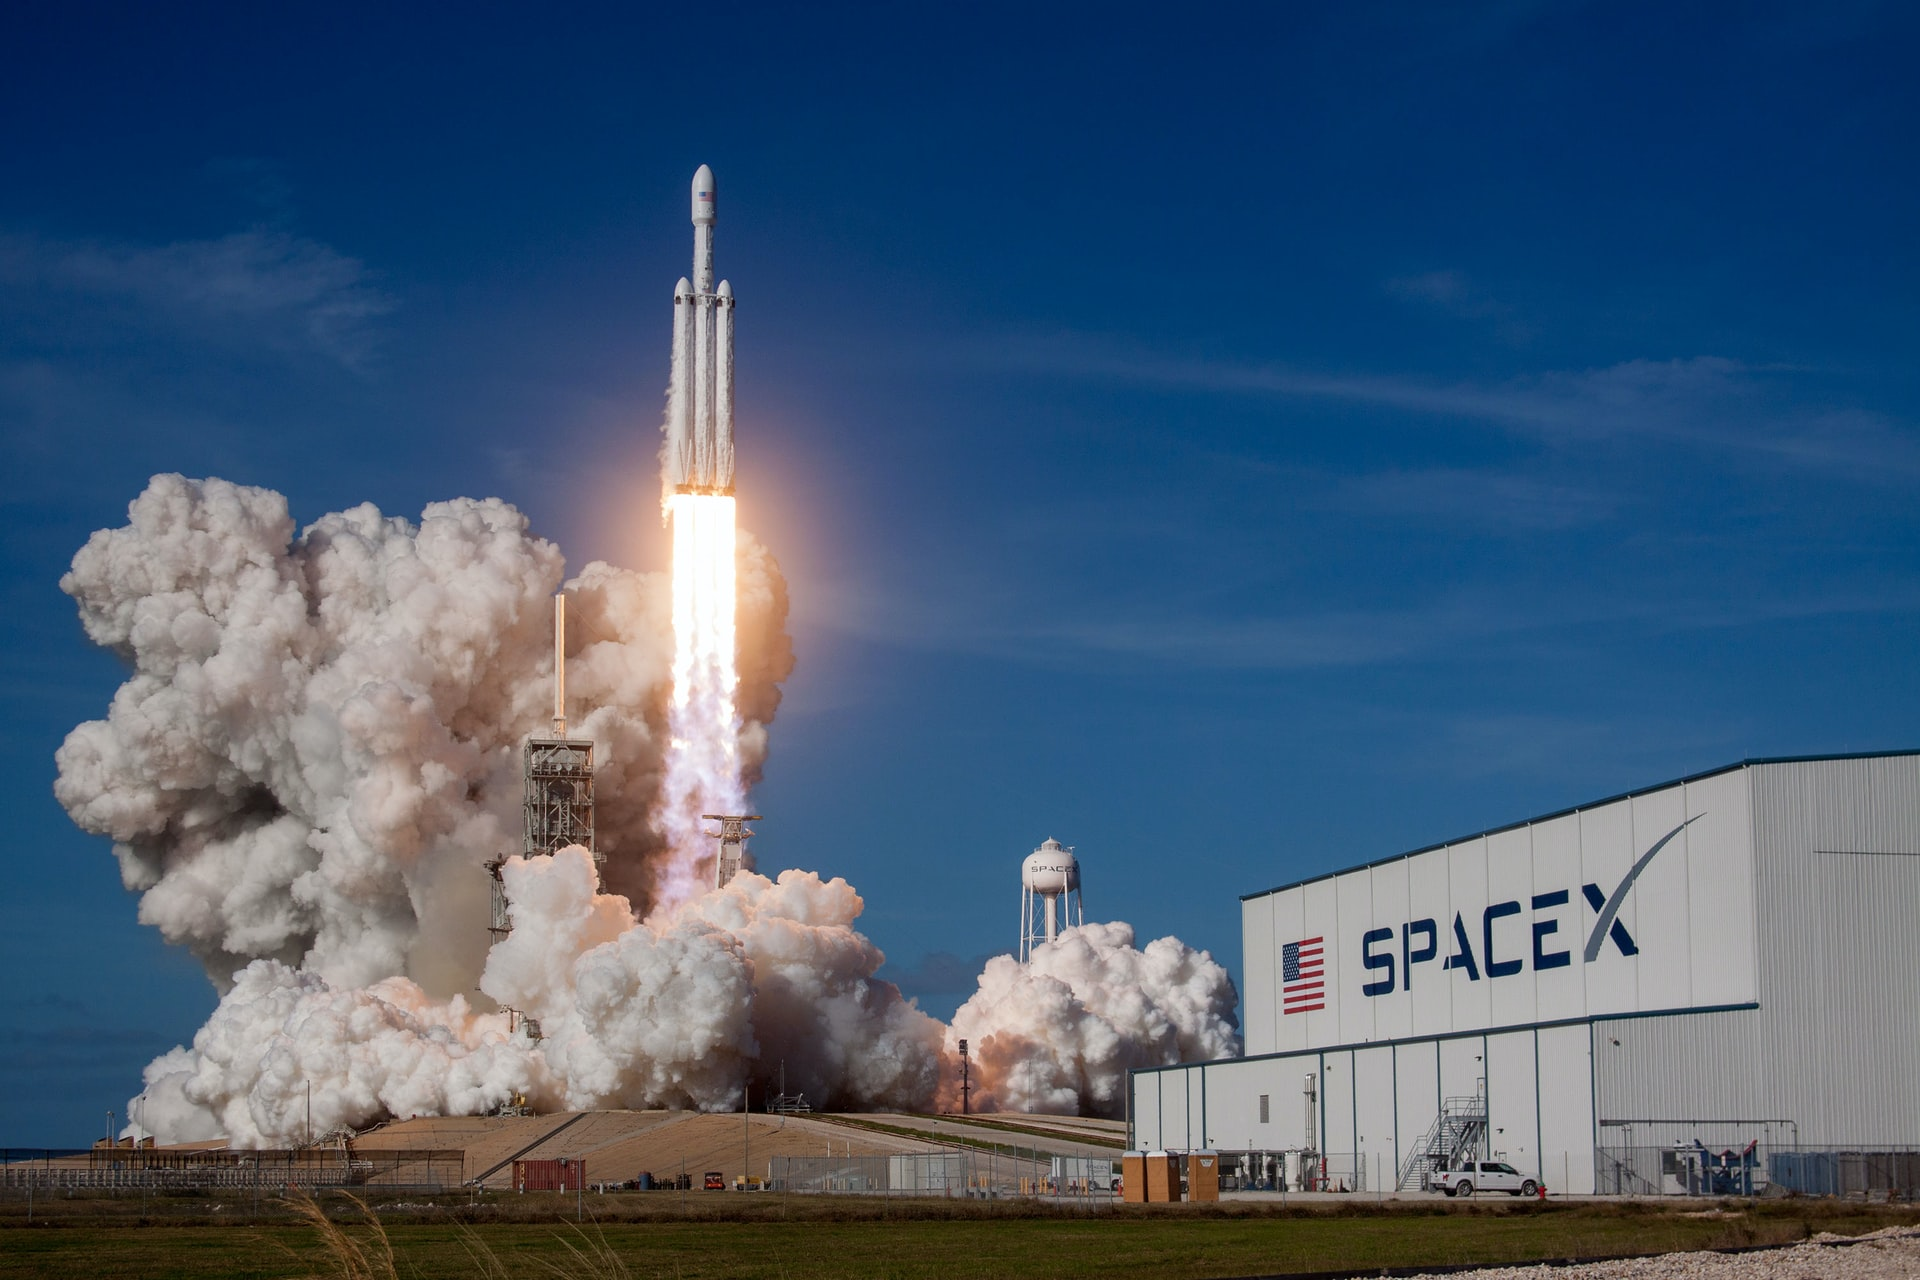 How far will SpaceX go?